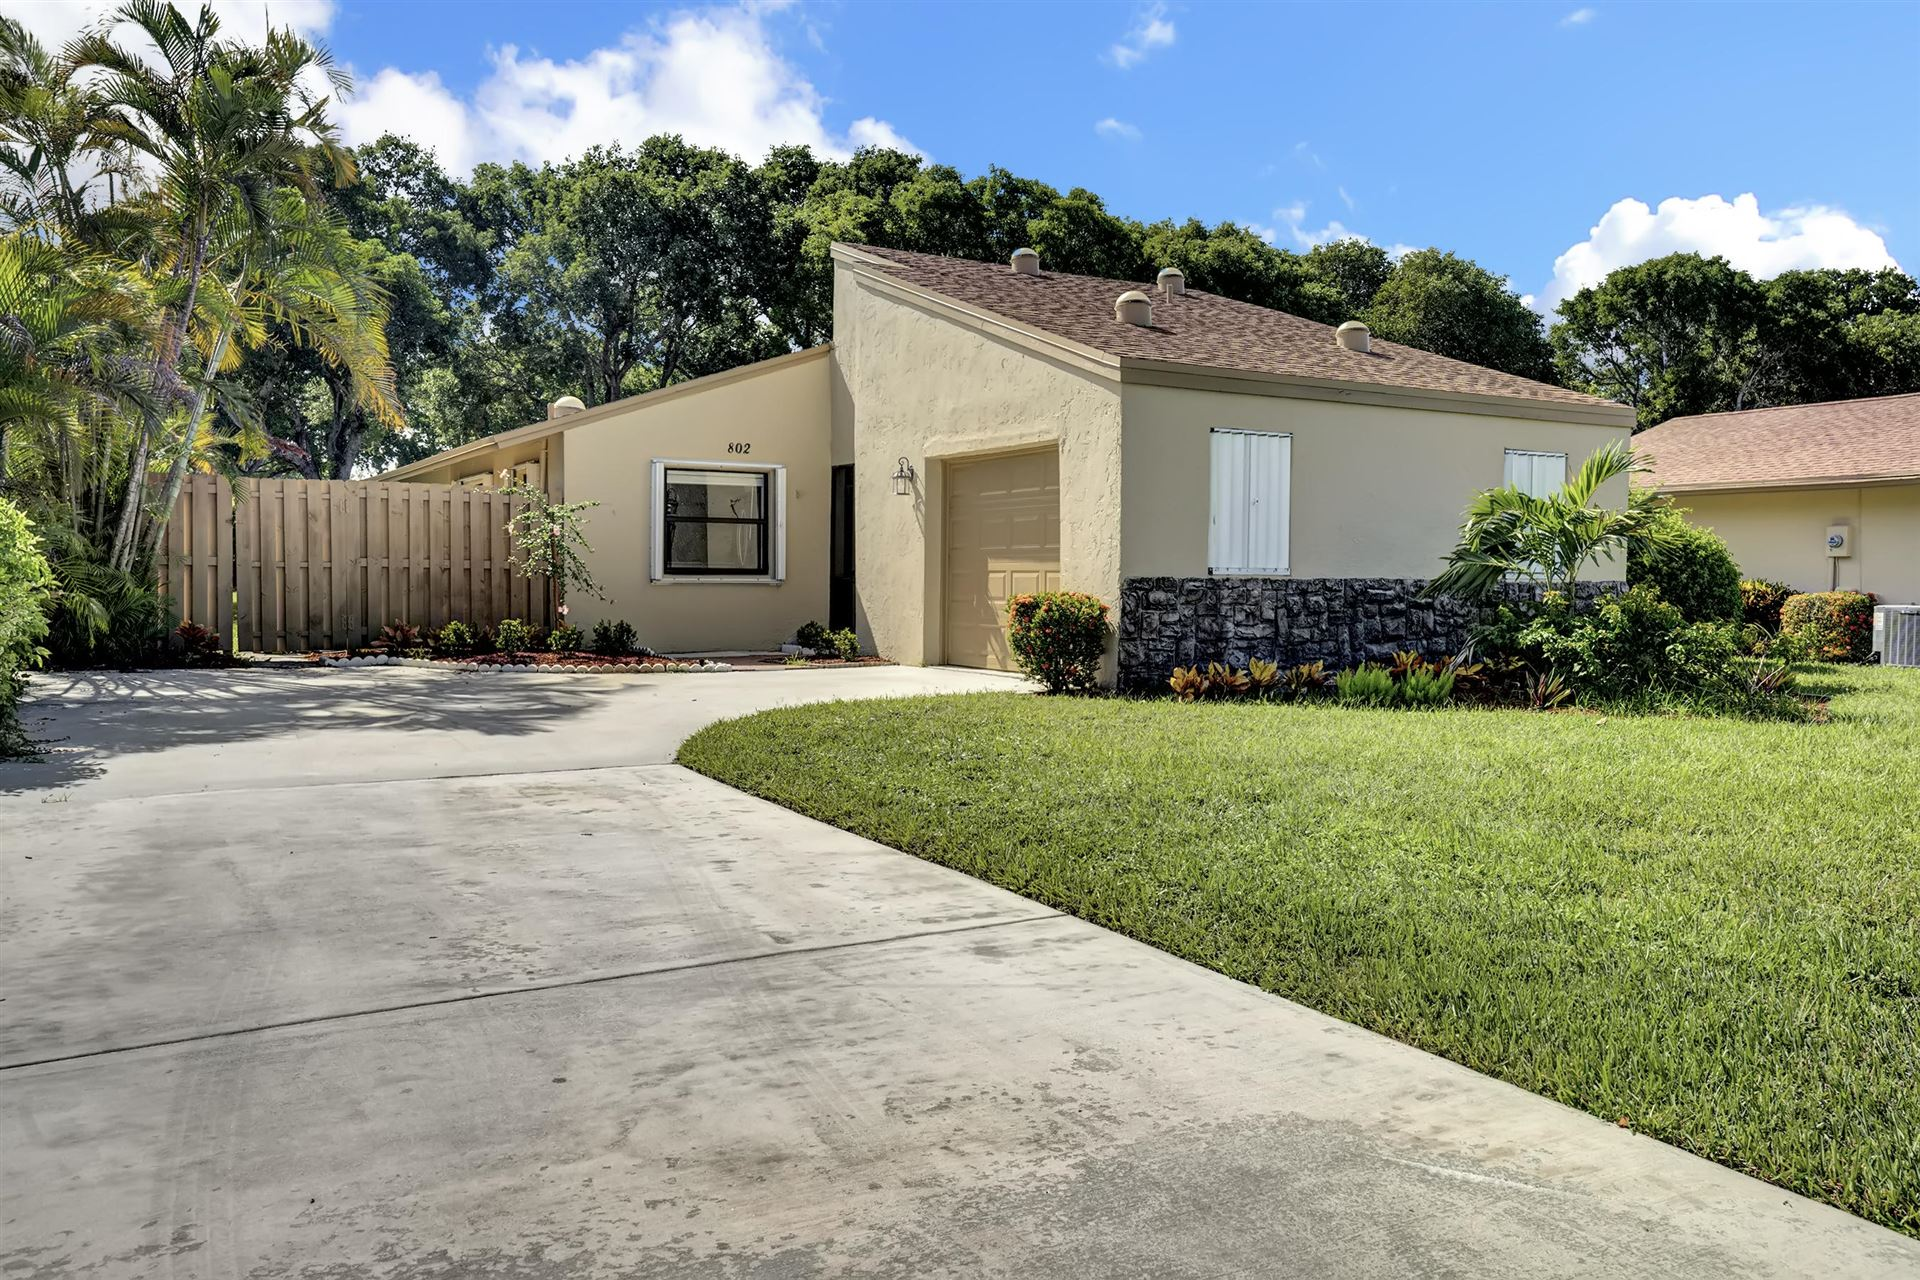 802 NW 26th Avenue, Delray Beach, FL 33445 - #: RX-10653123